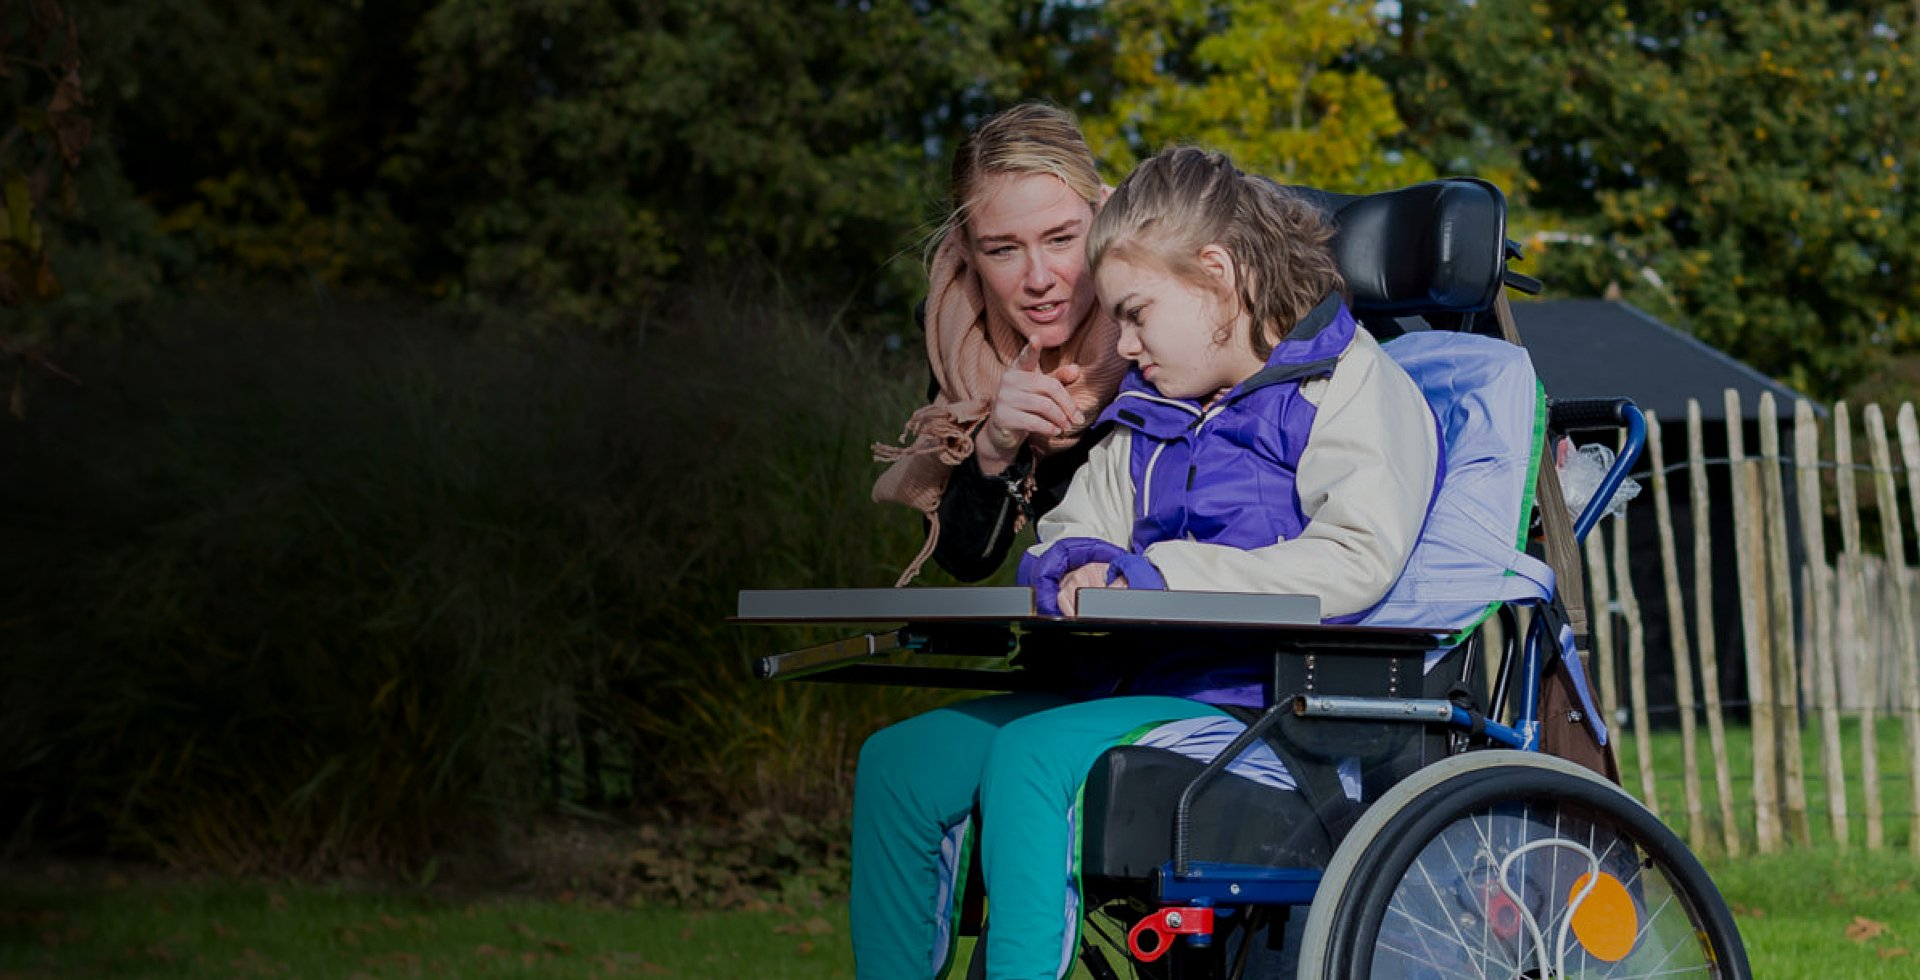 A disabled girl in a wheelchair relaxing outside together with a care assistant